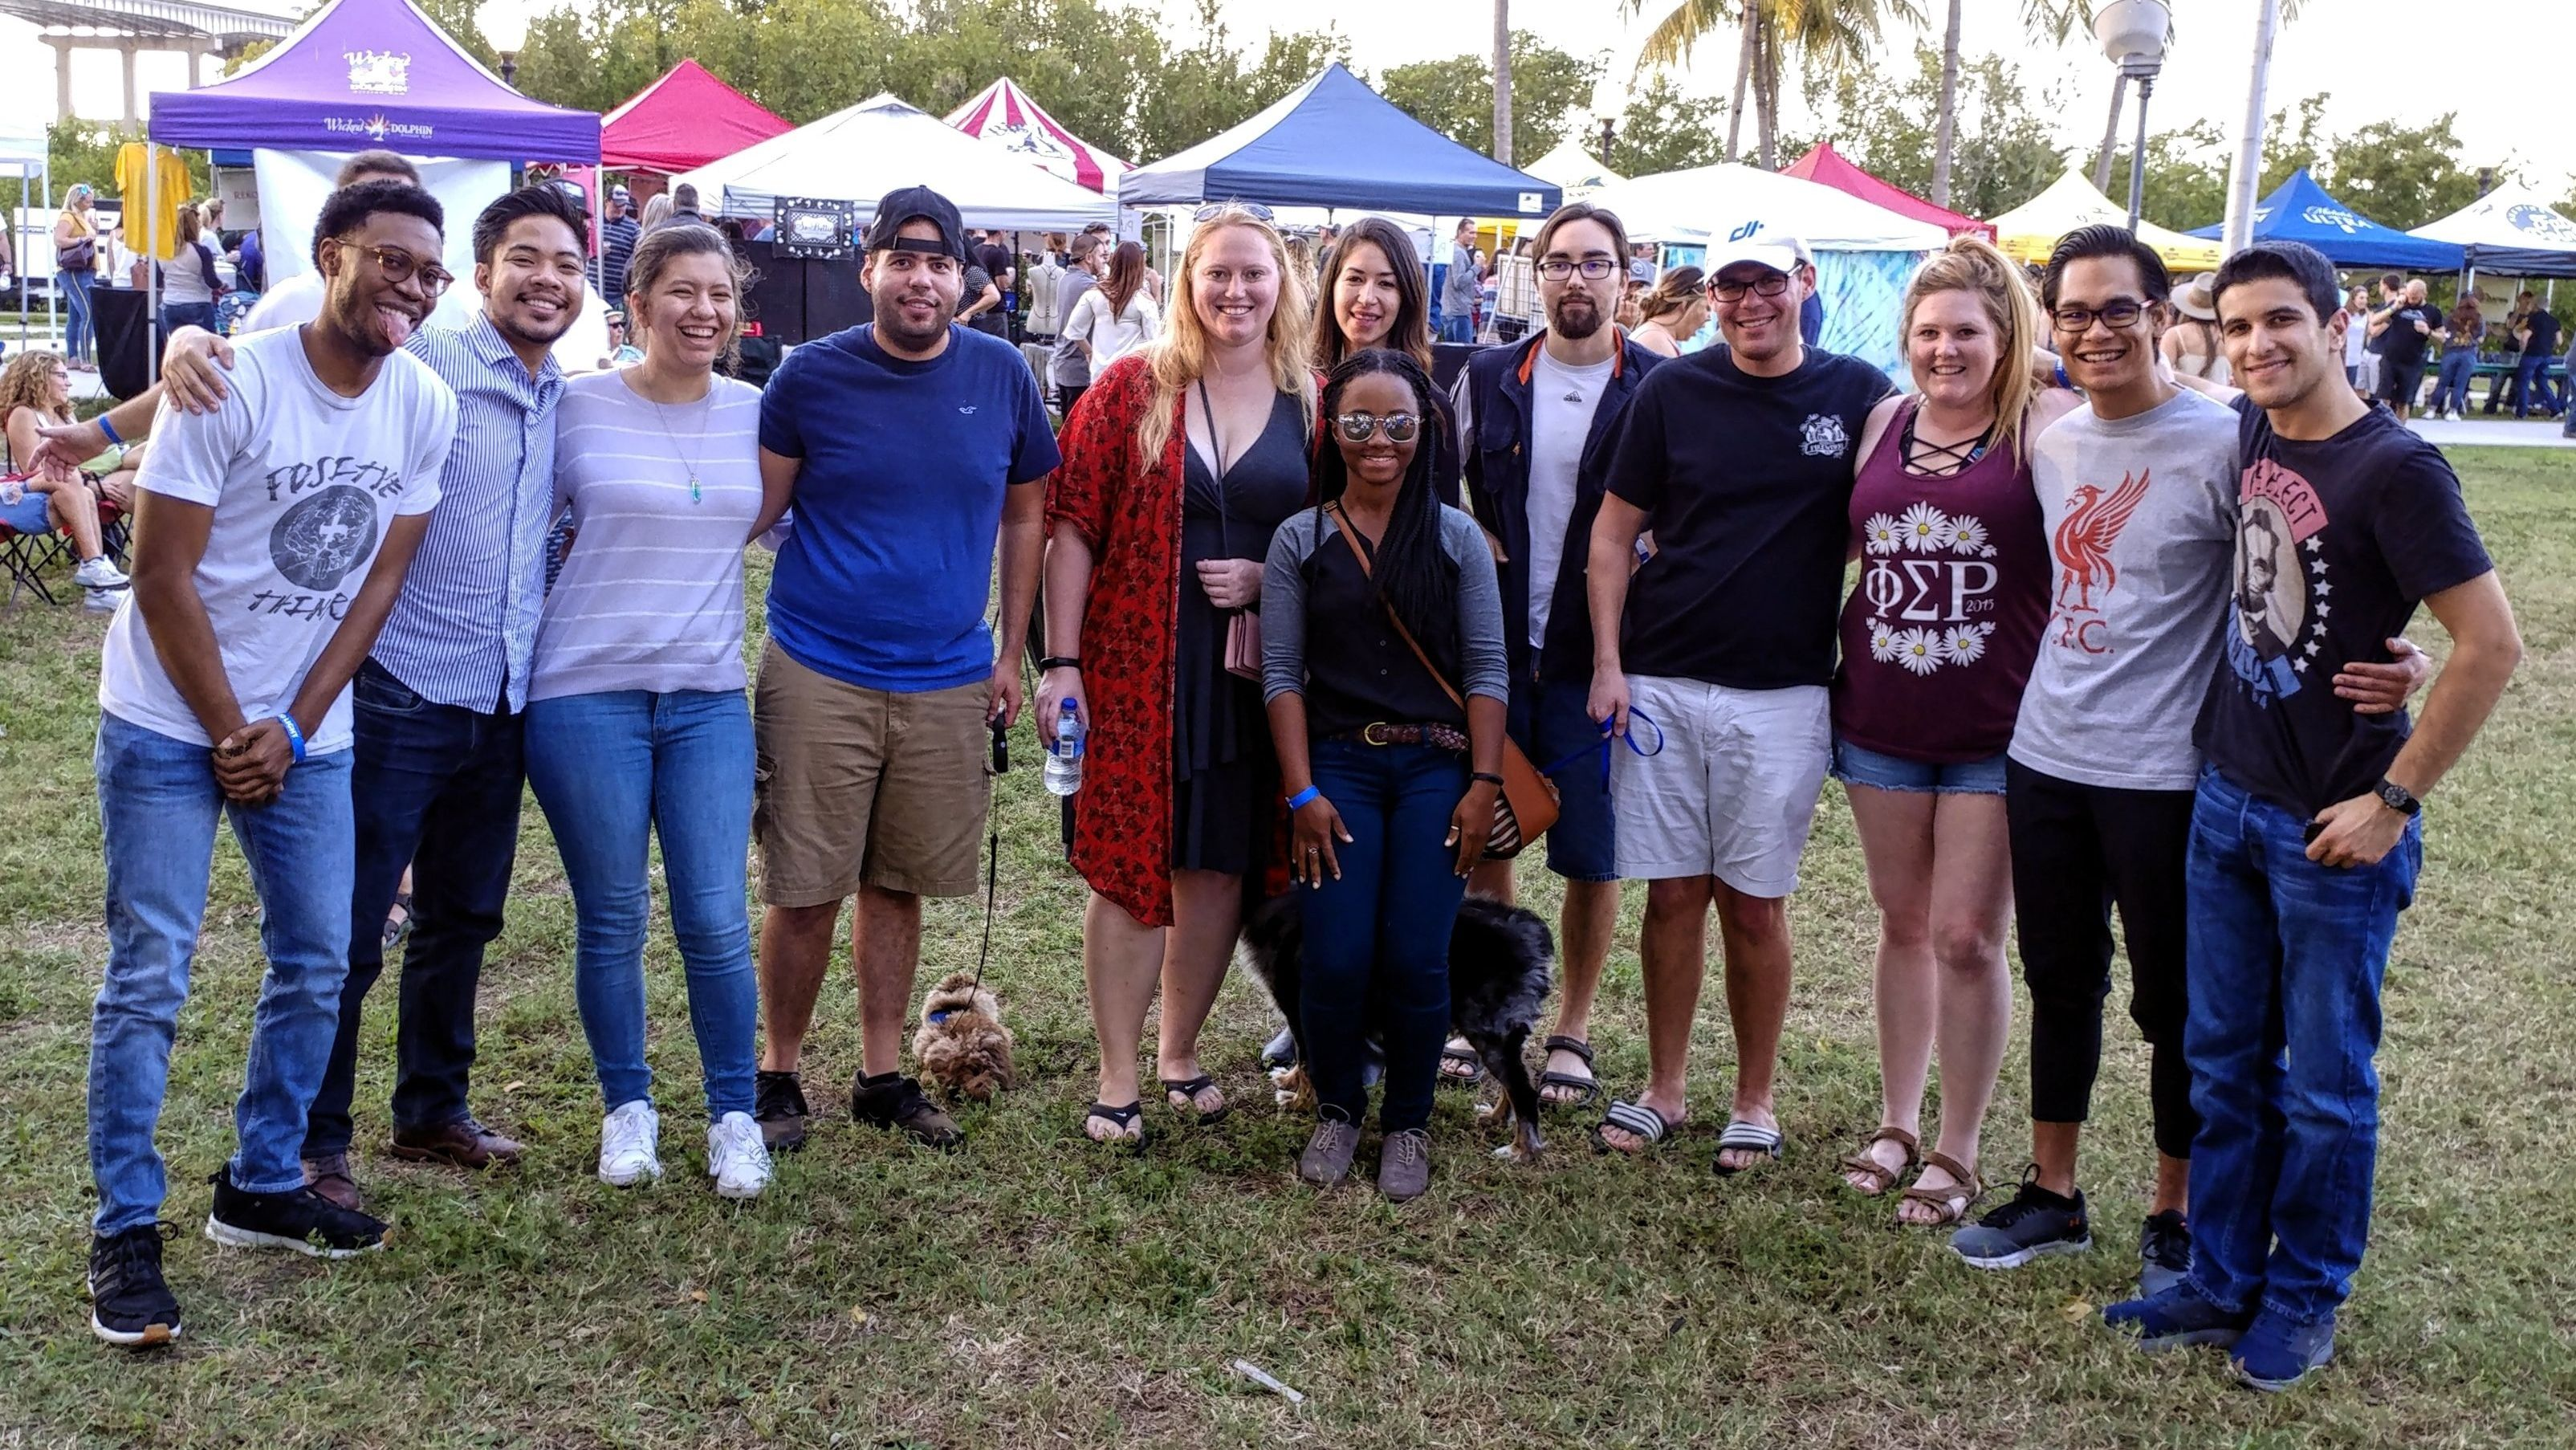 SWFL 20's Hang Out Group - Friends for the Moderately Social